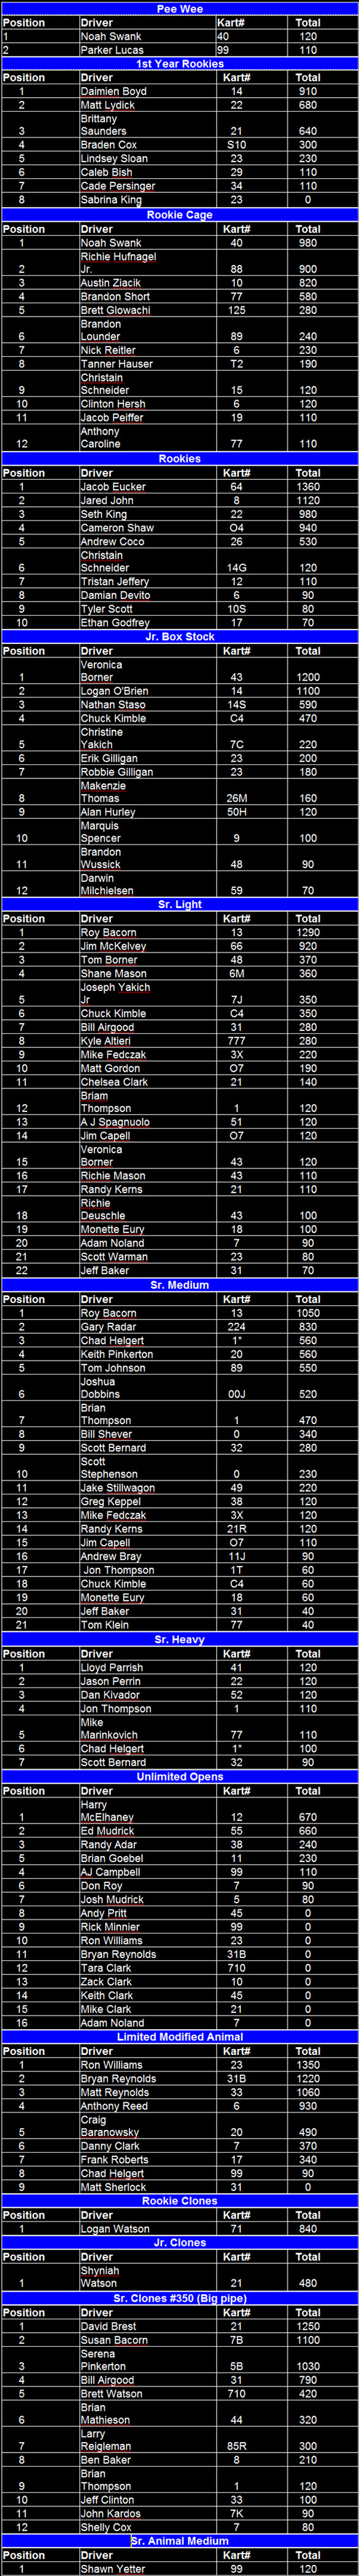 Naugle Speedway 2010 Final Point Standings